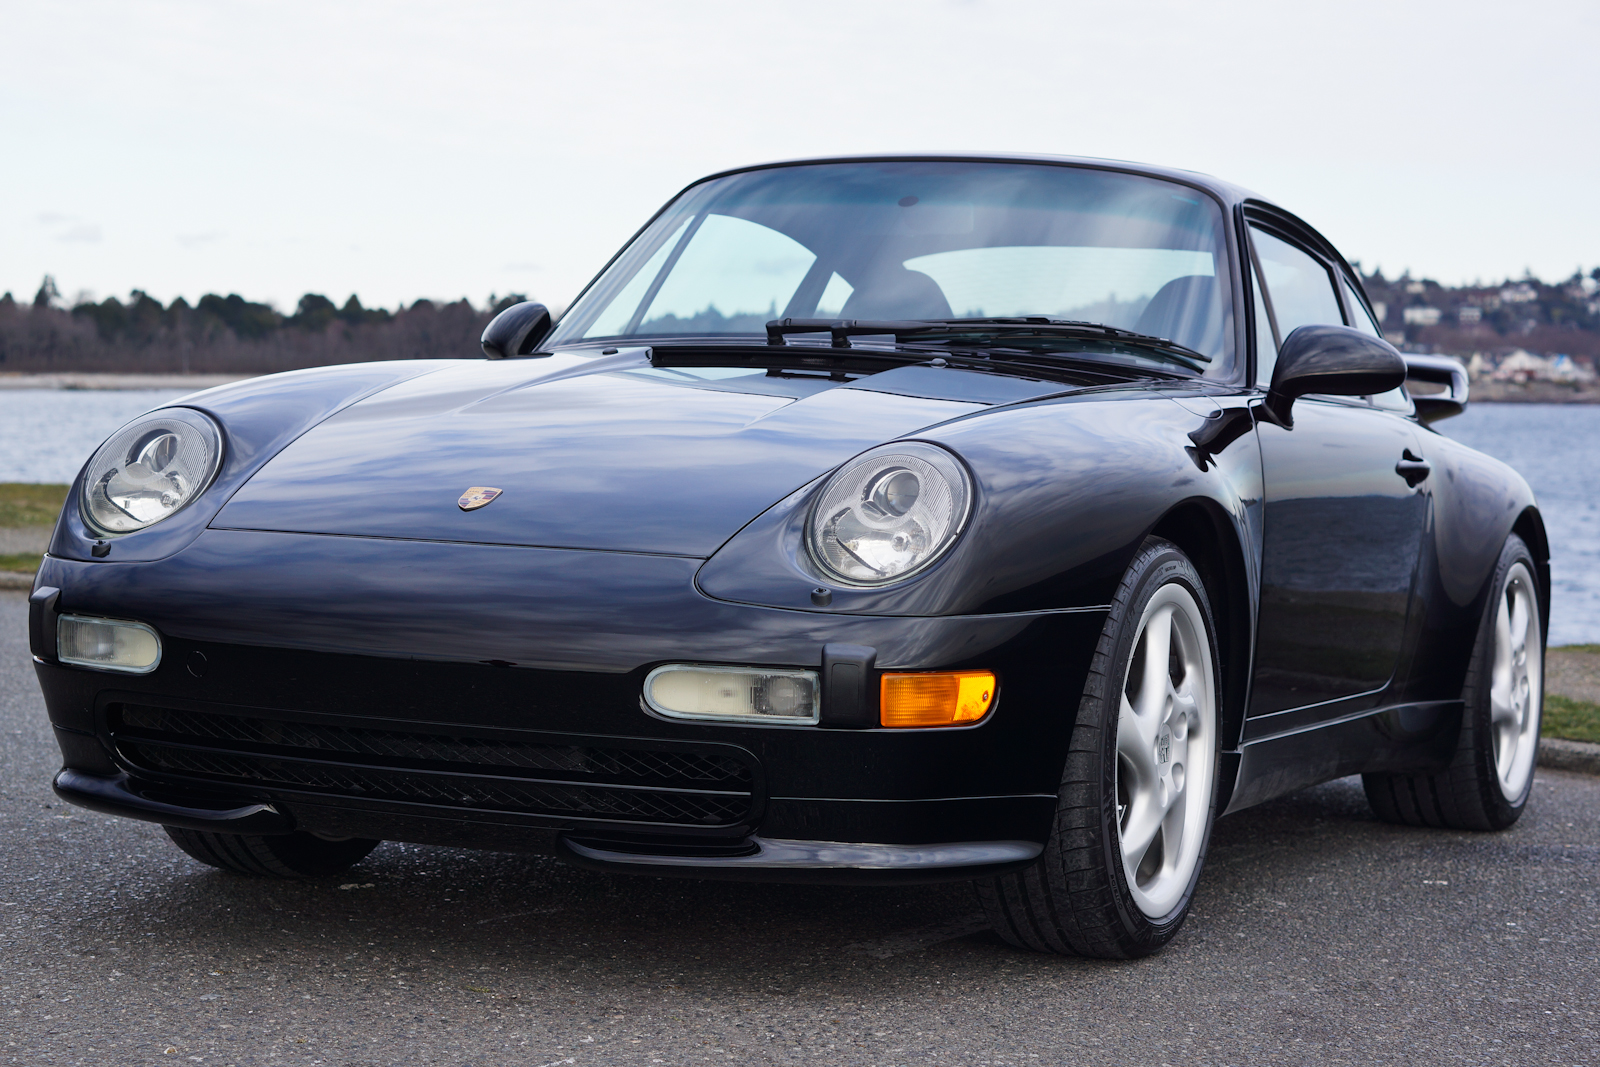 1997 Porsche 911 993 Carrera 2 Silver Arrow Cars Ltd